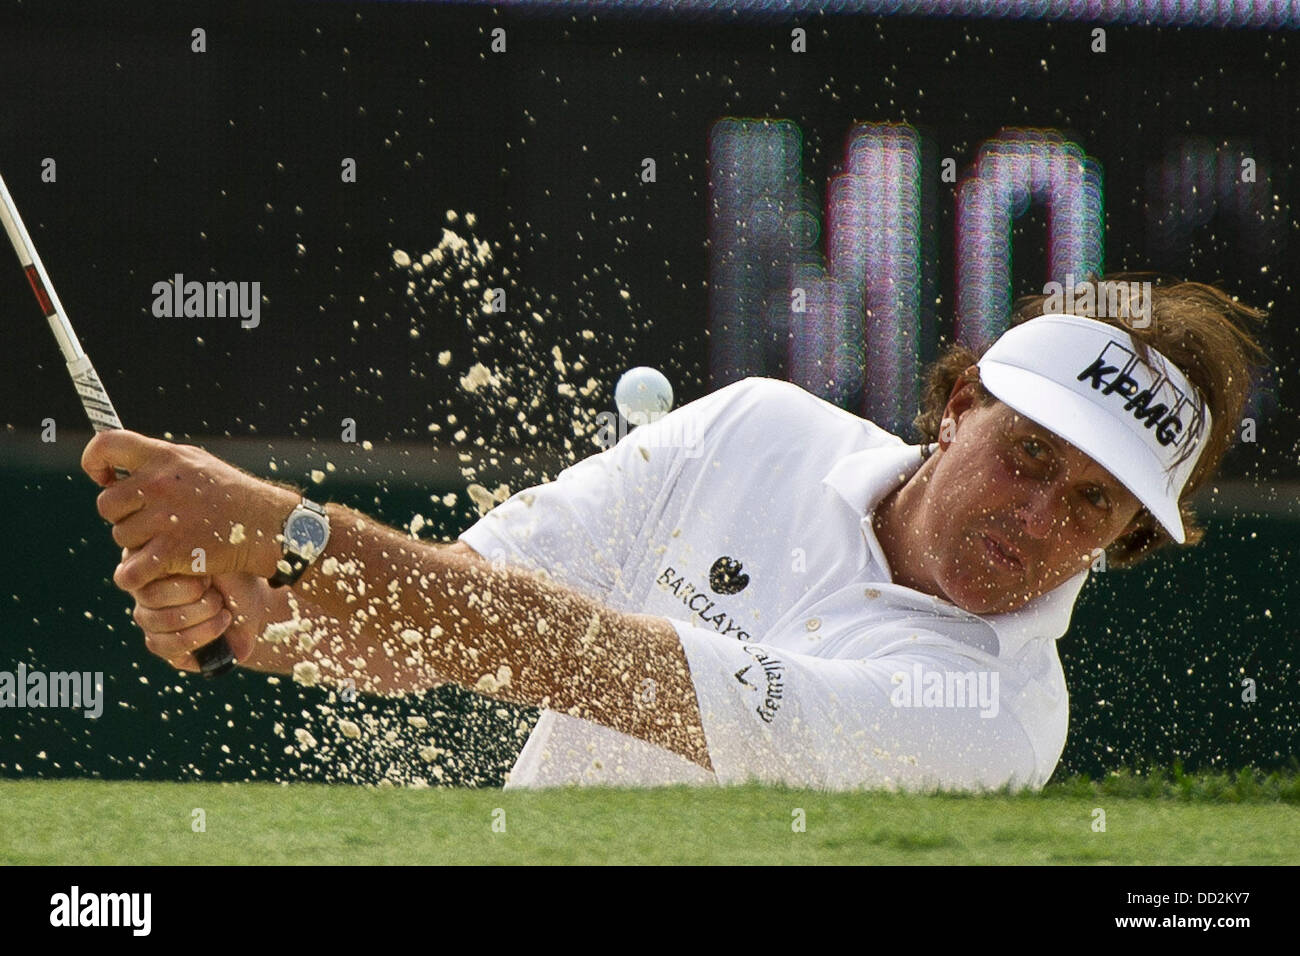 Jersey City, New Jersey, USA. 23rd Aug, 2013. August 23, 2013: Phil Mickelson (USA) hits the ball out of a sandtrap - Stock Image